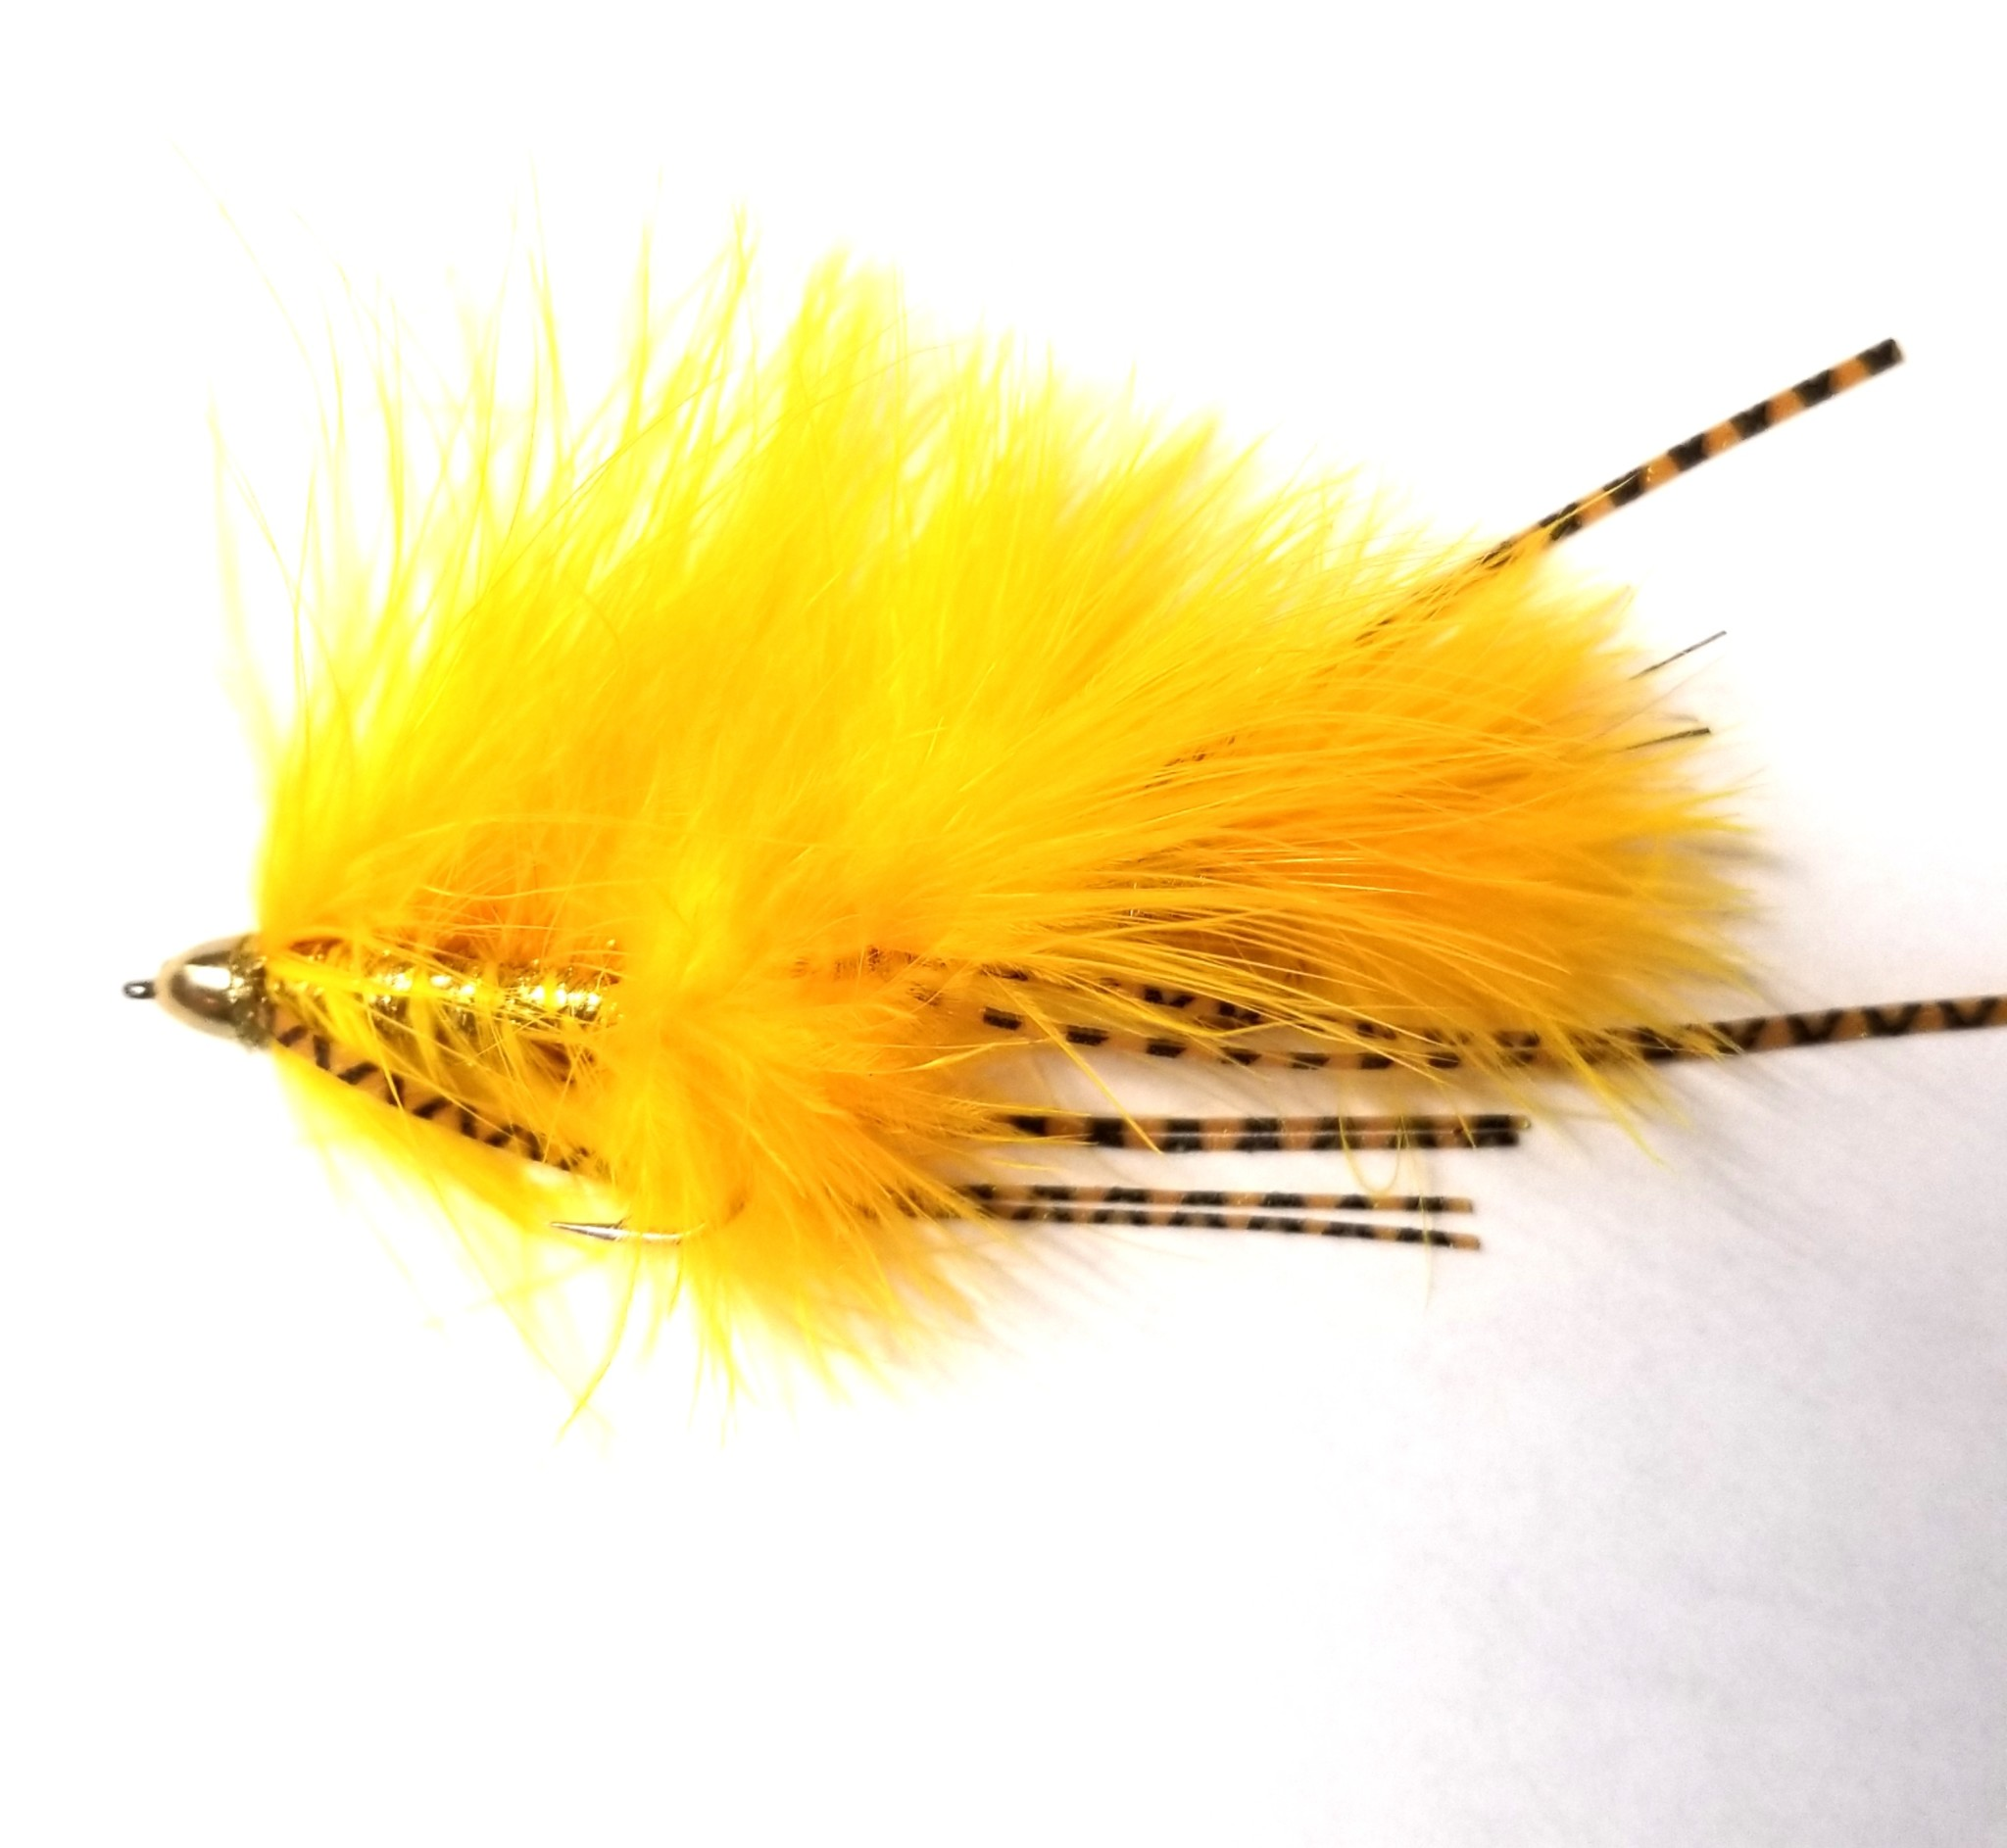 Montana Fly Company Galloup's Peanut Envy Yellow